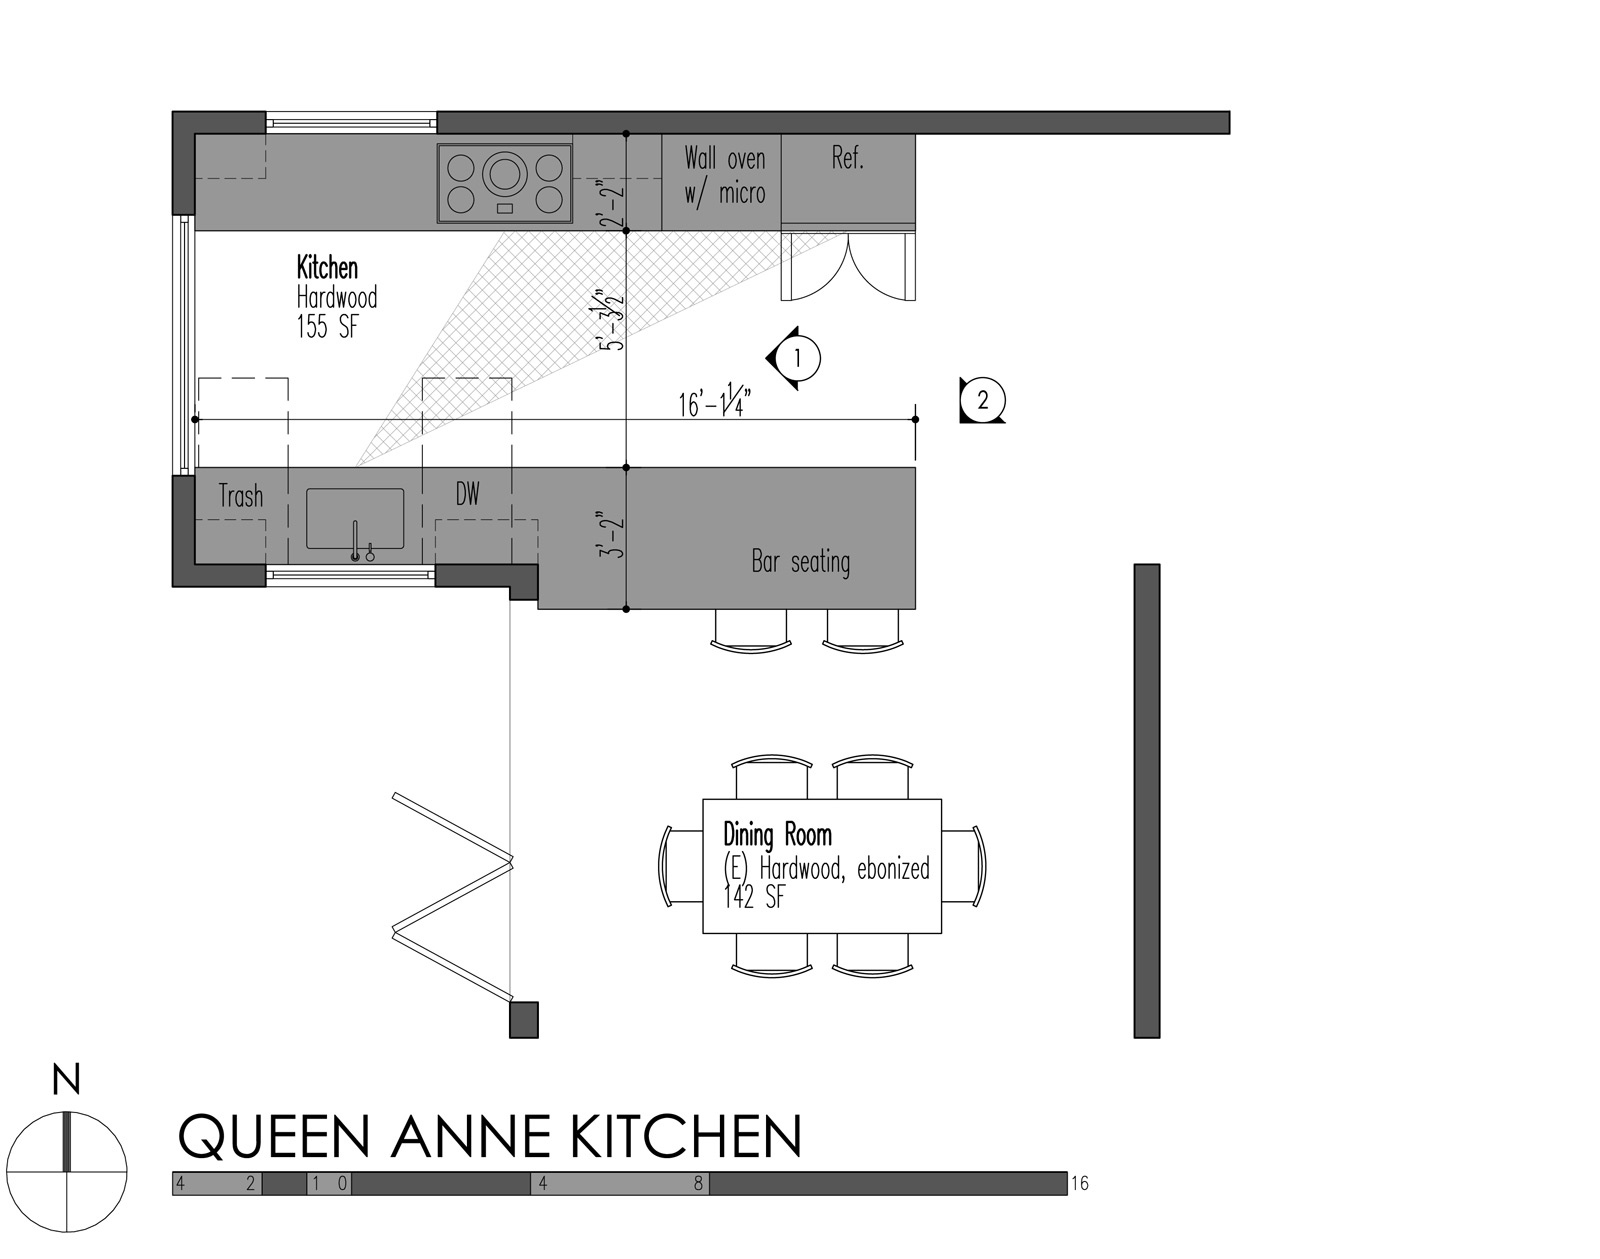 Kitchen construction design and layout - Build Llc Queen Anne Kitchen Plan